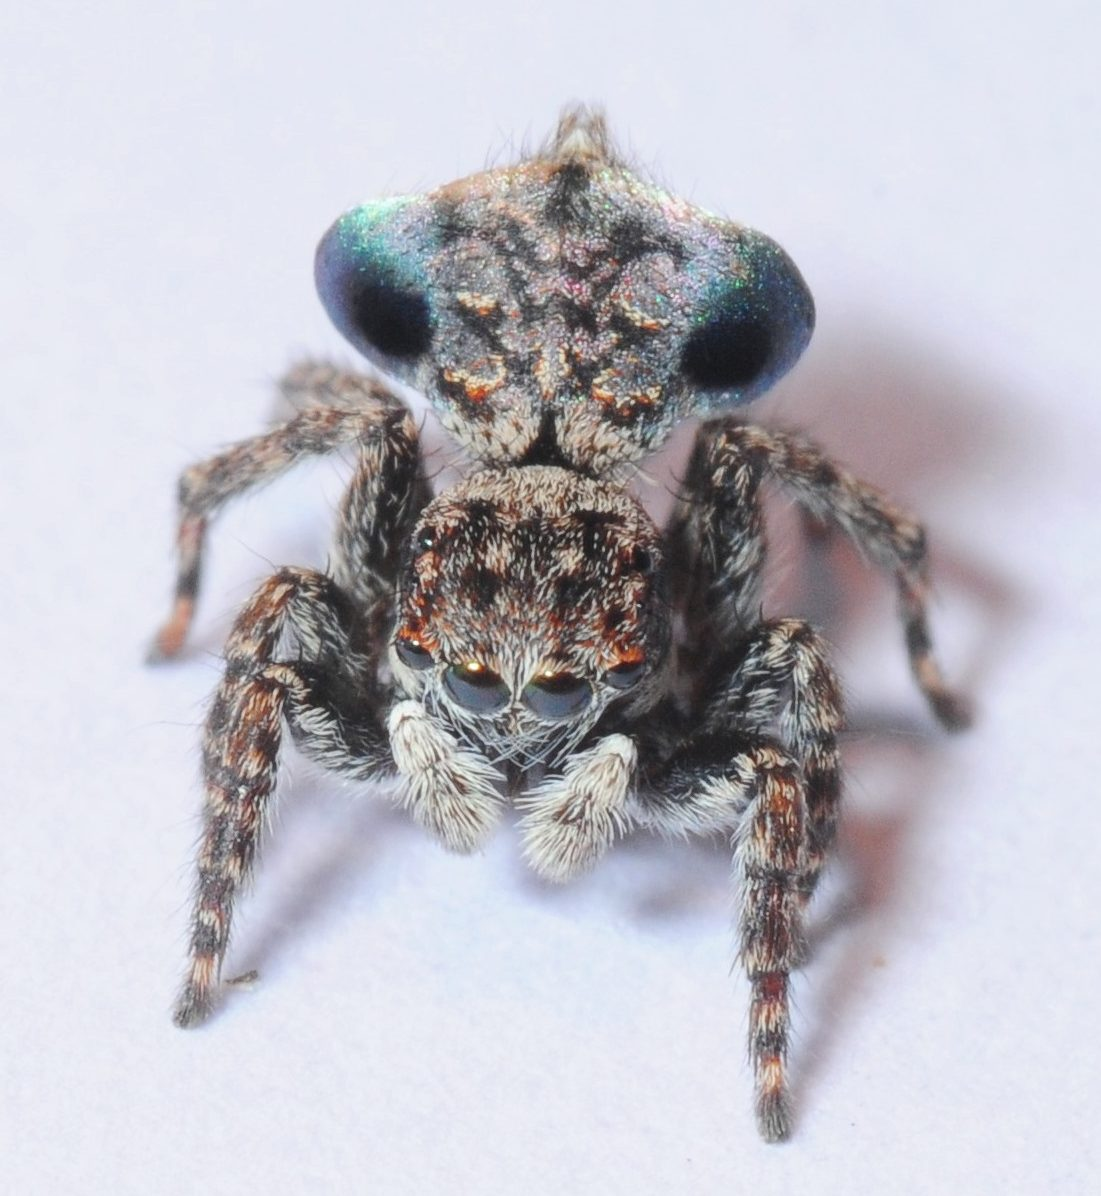 Maratus sapphirus,  a new species of Peacock Spider, found by Helen Ransom, named and photographed by Stuart Harris 2016 at the Atlas of Life/Four Winds BioBlitz